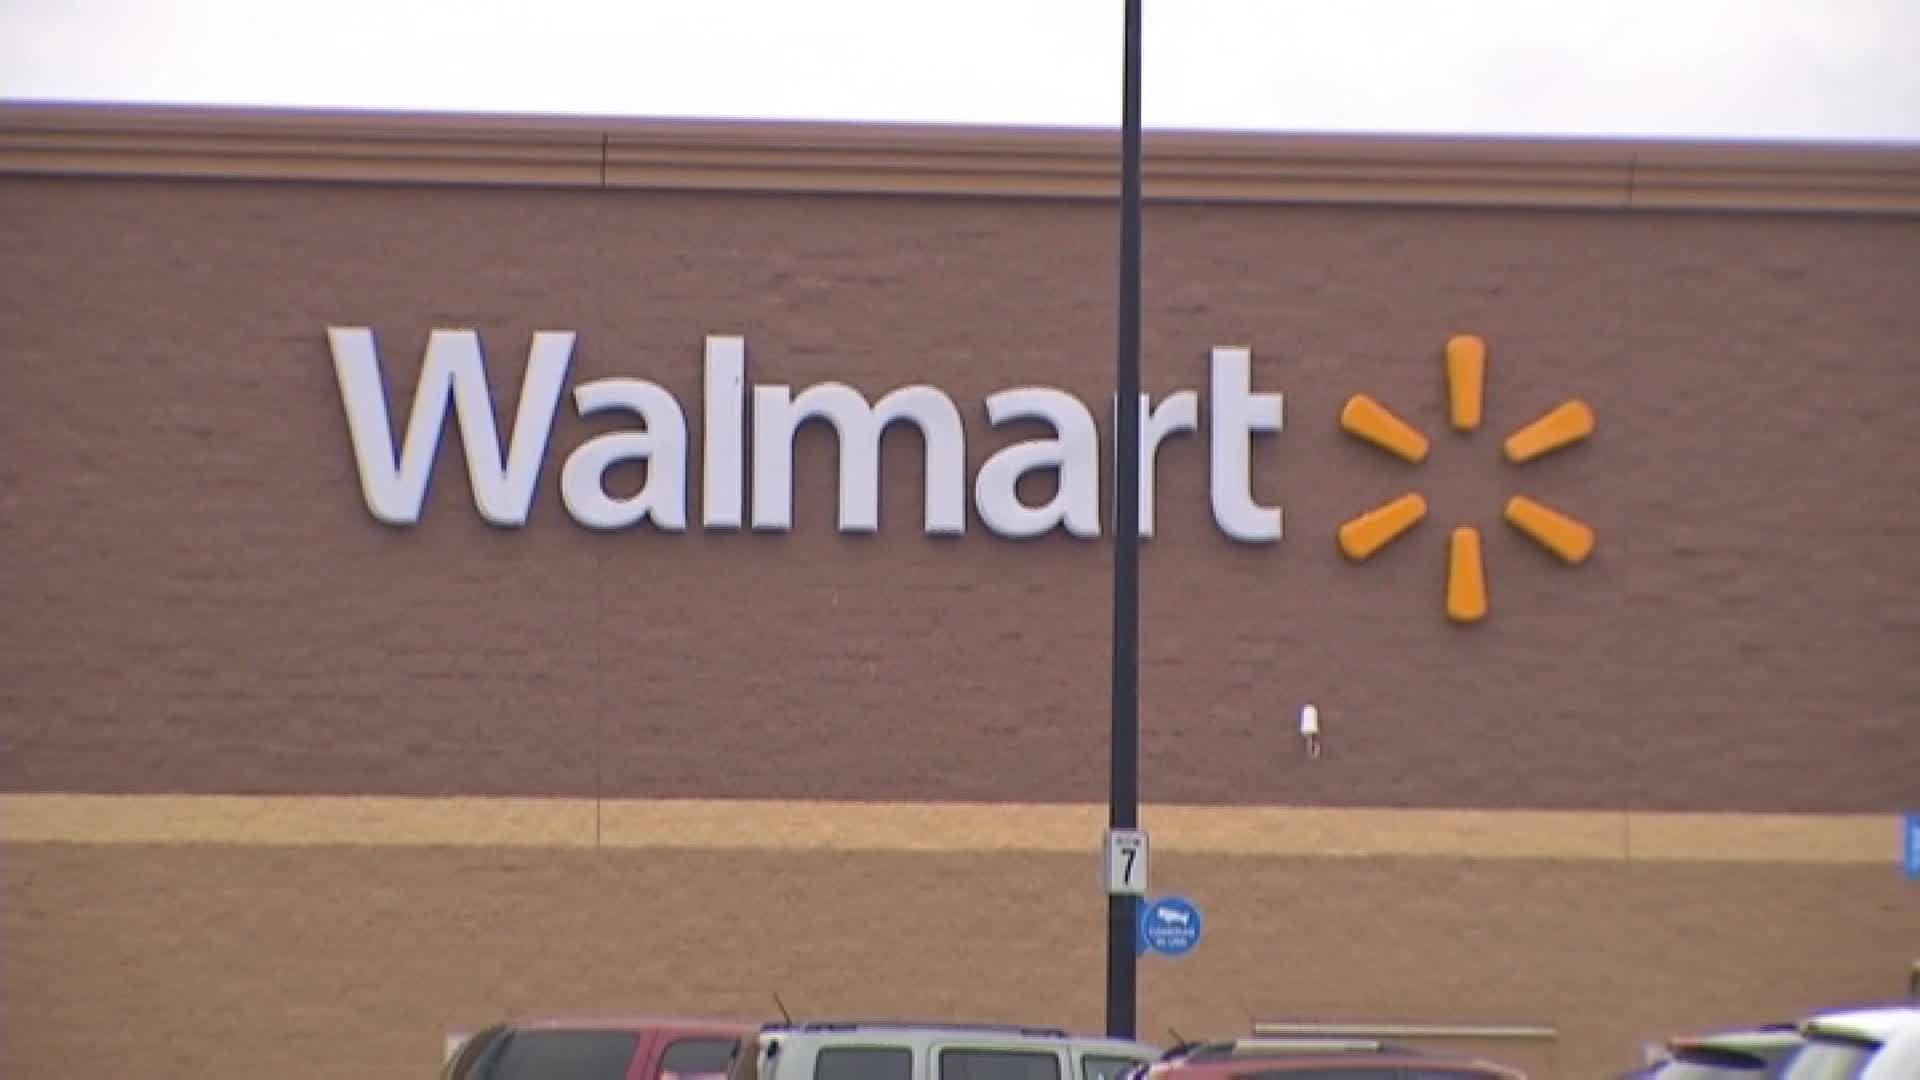 Walmart_will_pay_employees_for_good_atte_6_20190201162328